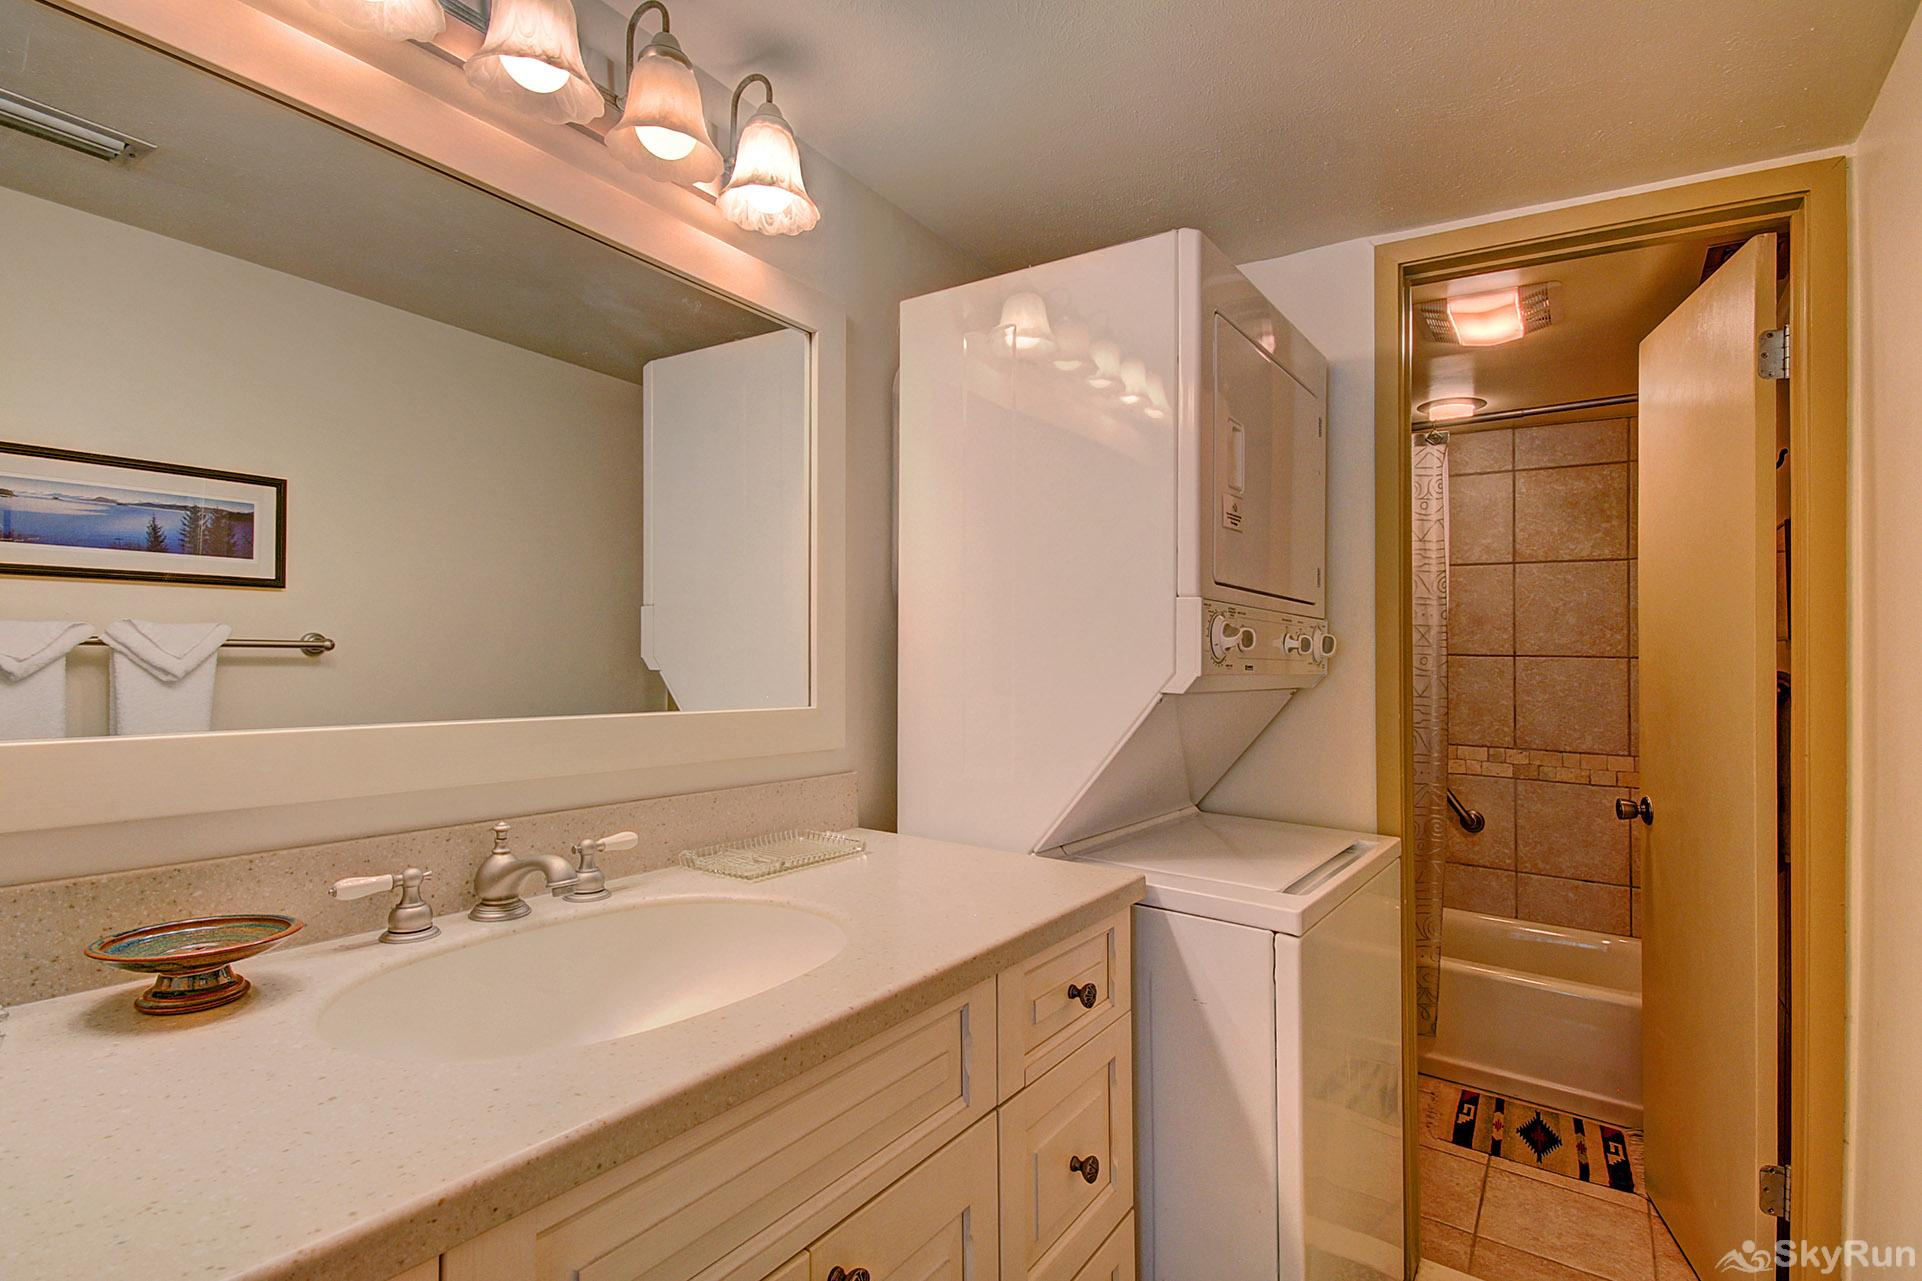 Columbine 102 Master bath with private in-home washer/dryer